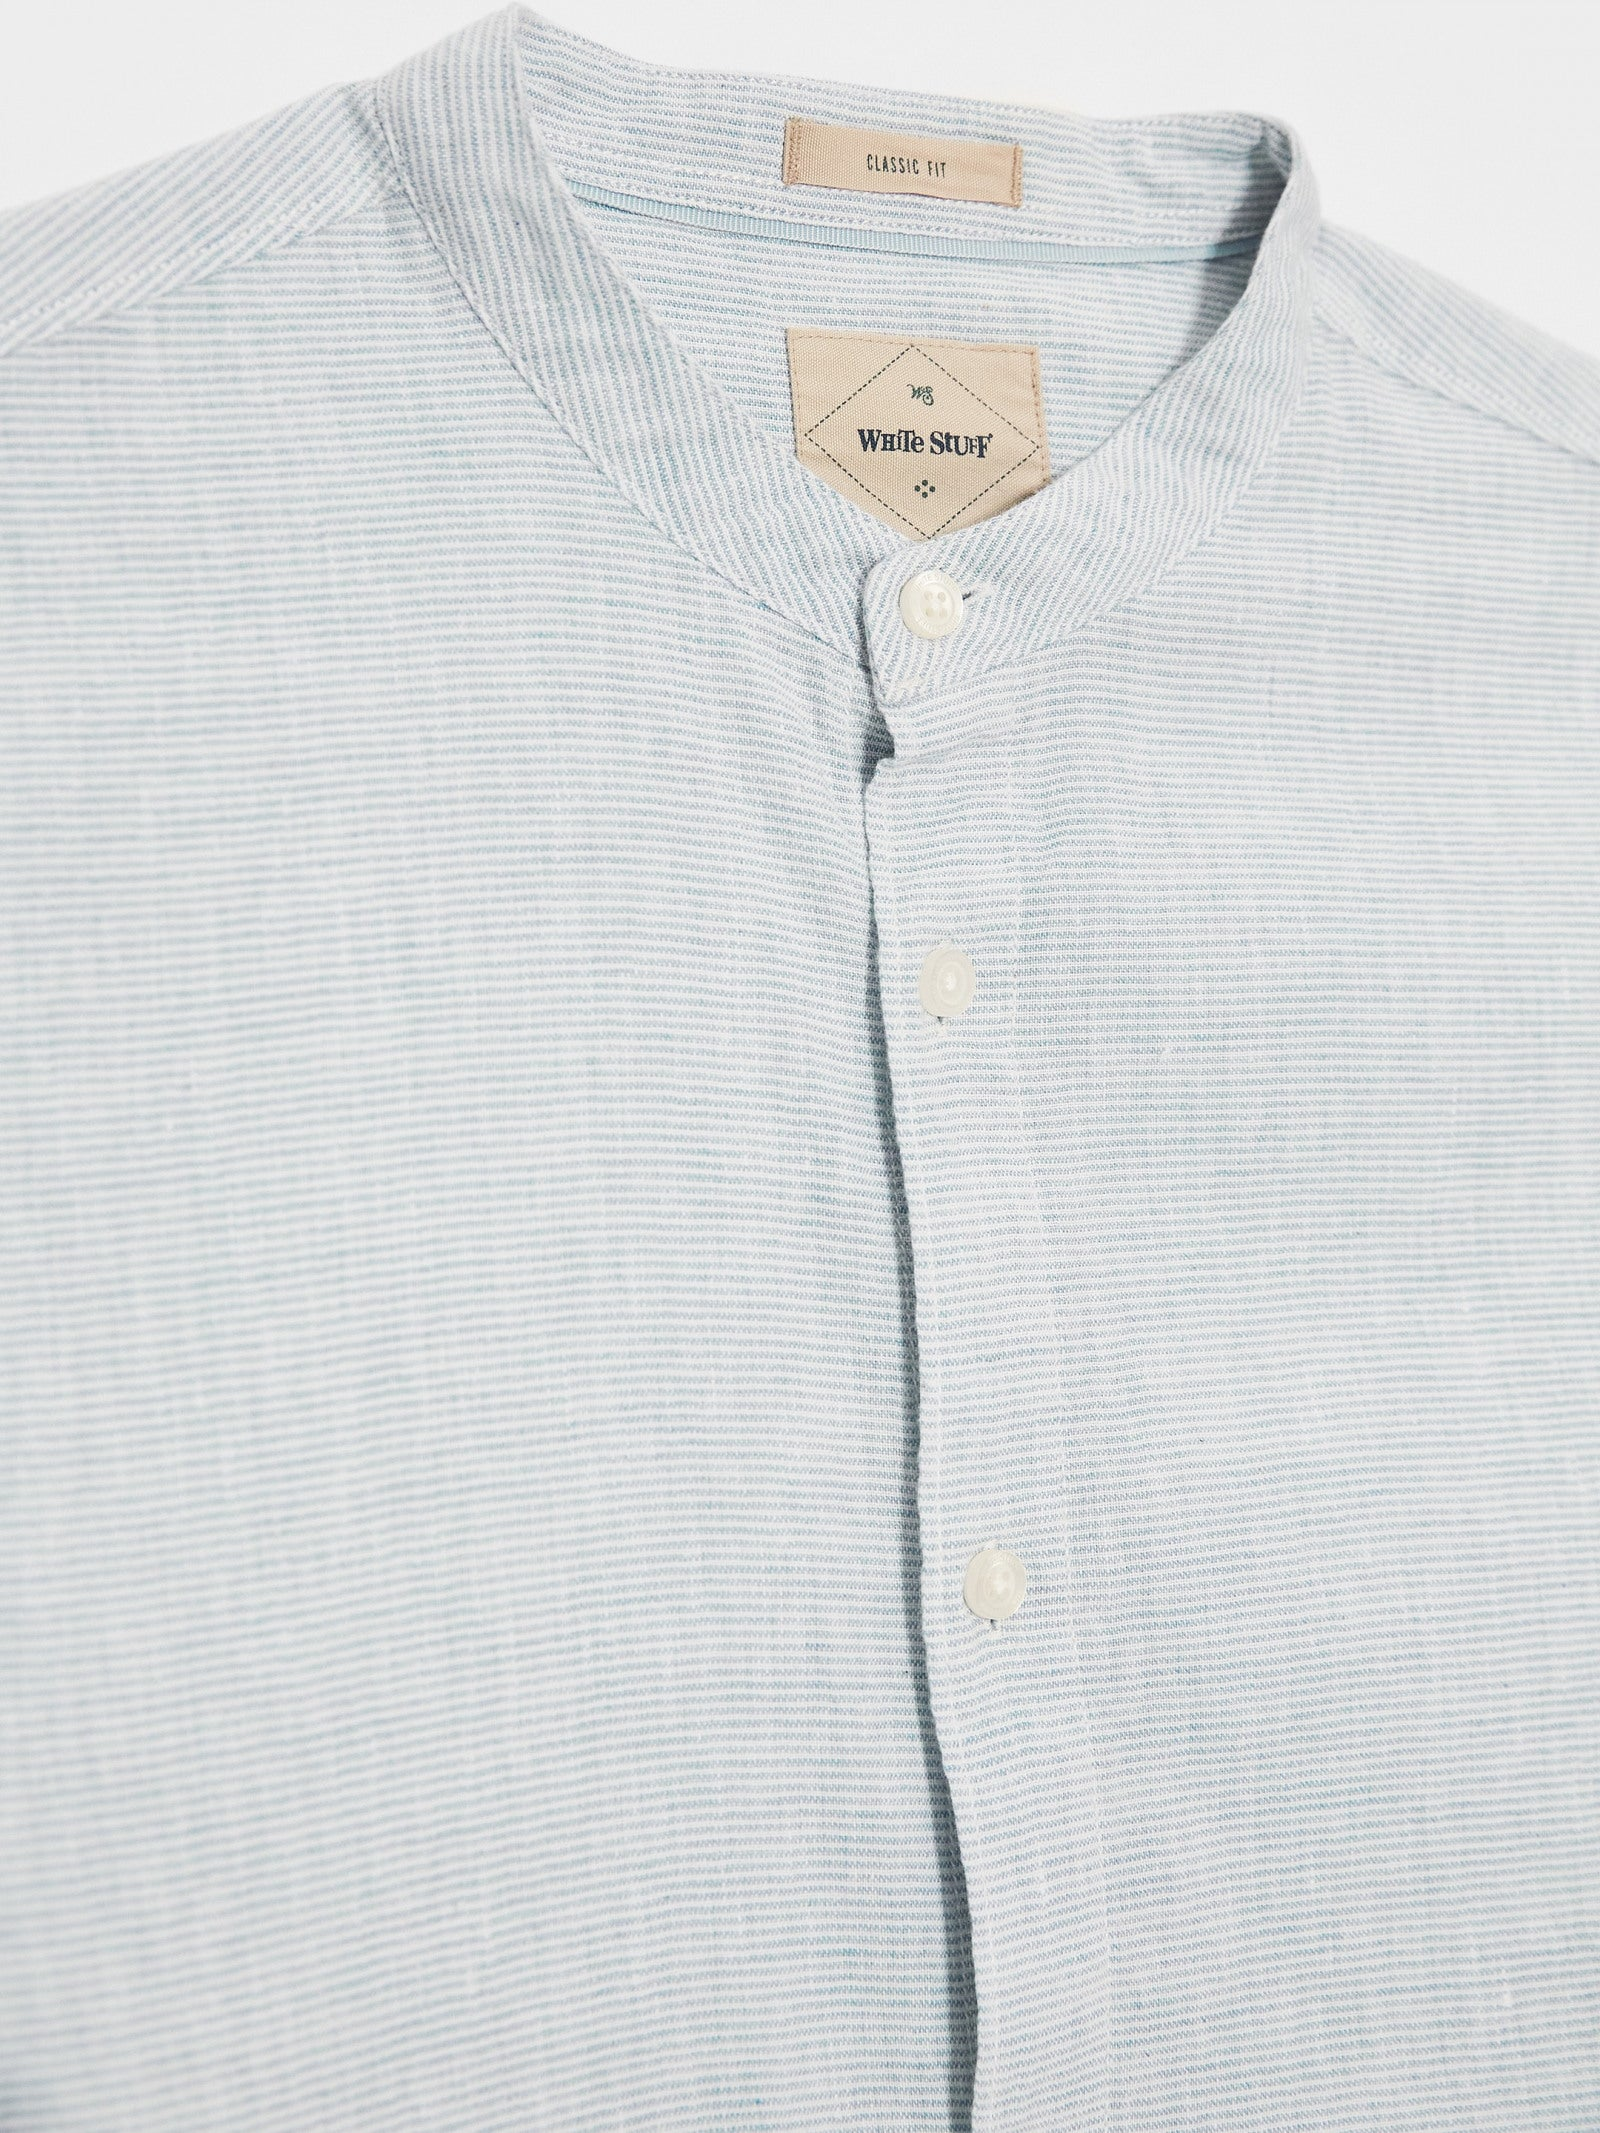 Spacedye Grandad Shirt in Light Blue